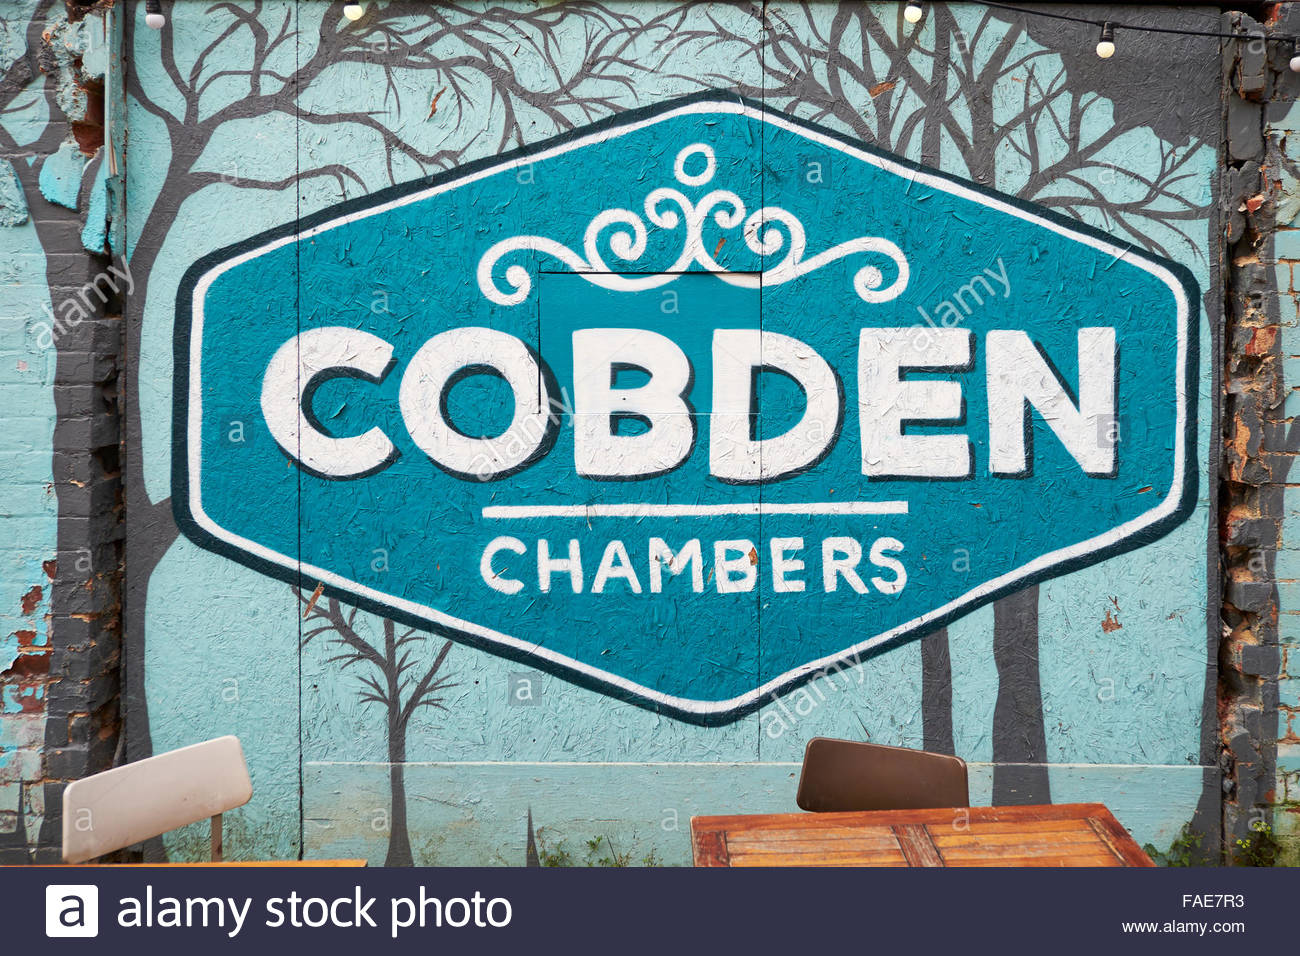 Cobden Chambers, small, independent businesses and retailers in Nottingham's Creative Quarter in Hockley  Nottingham - Stock Image